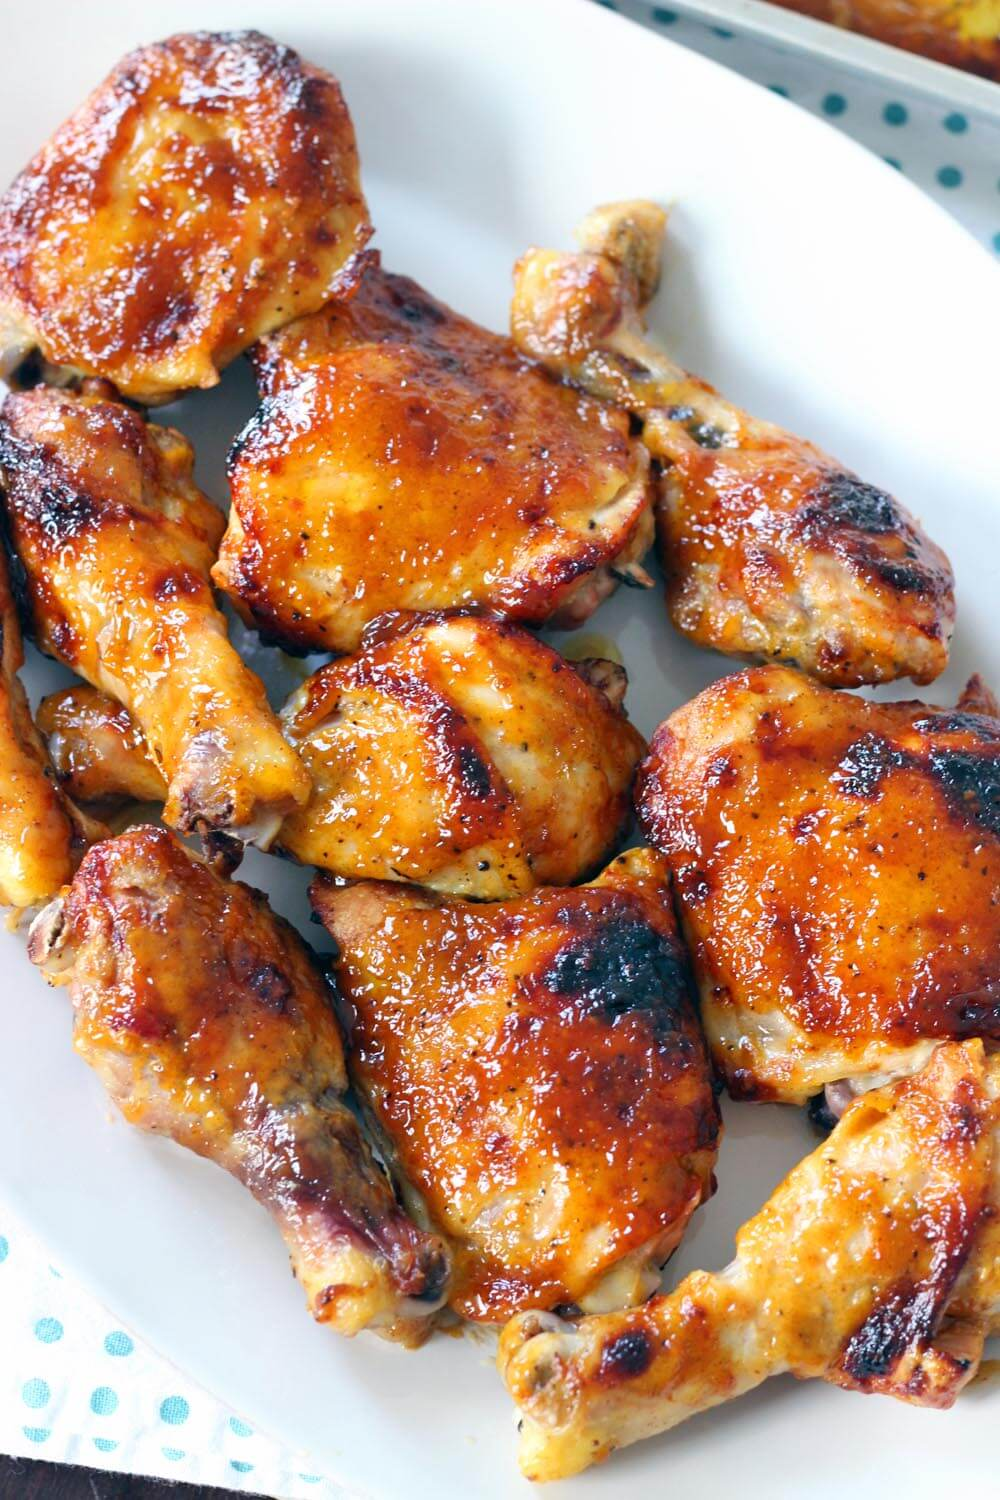 18. Two-Ingredient-Crispy-Oven-Baked-BBQ-Chicken